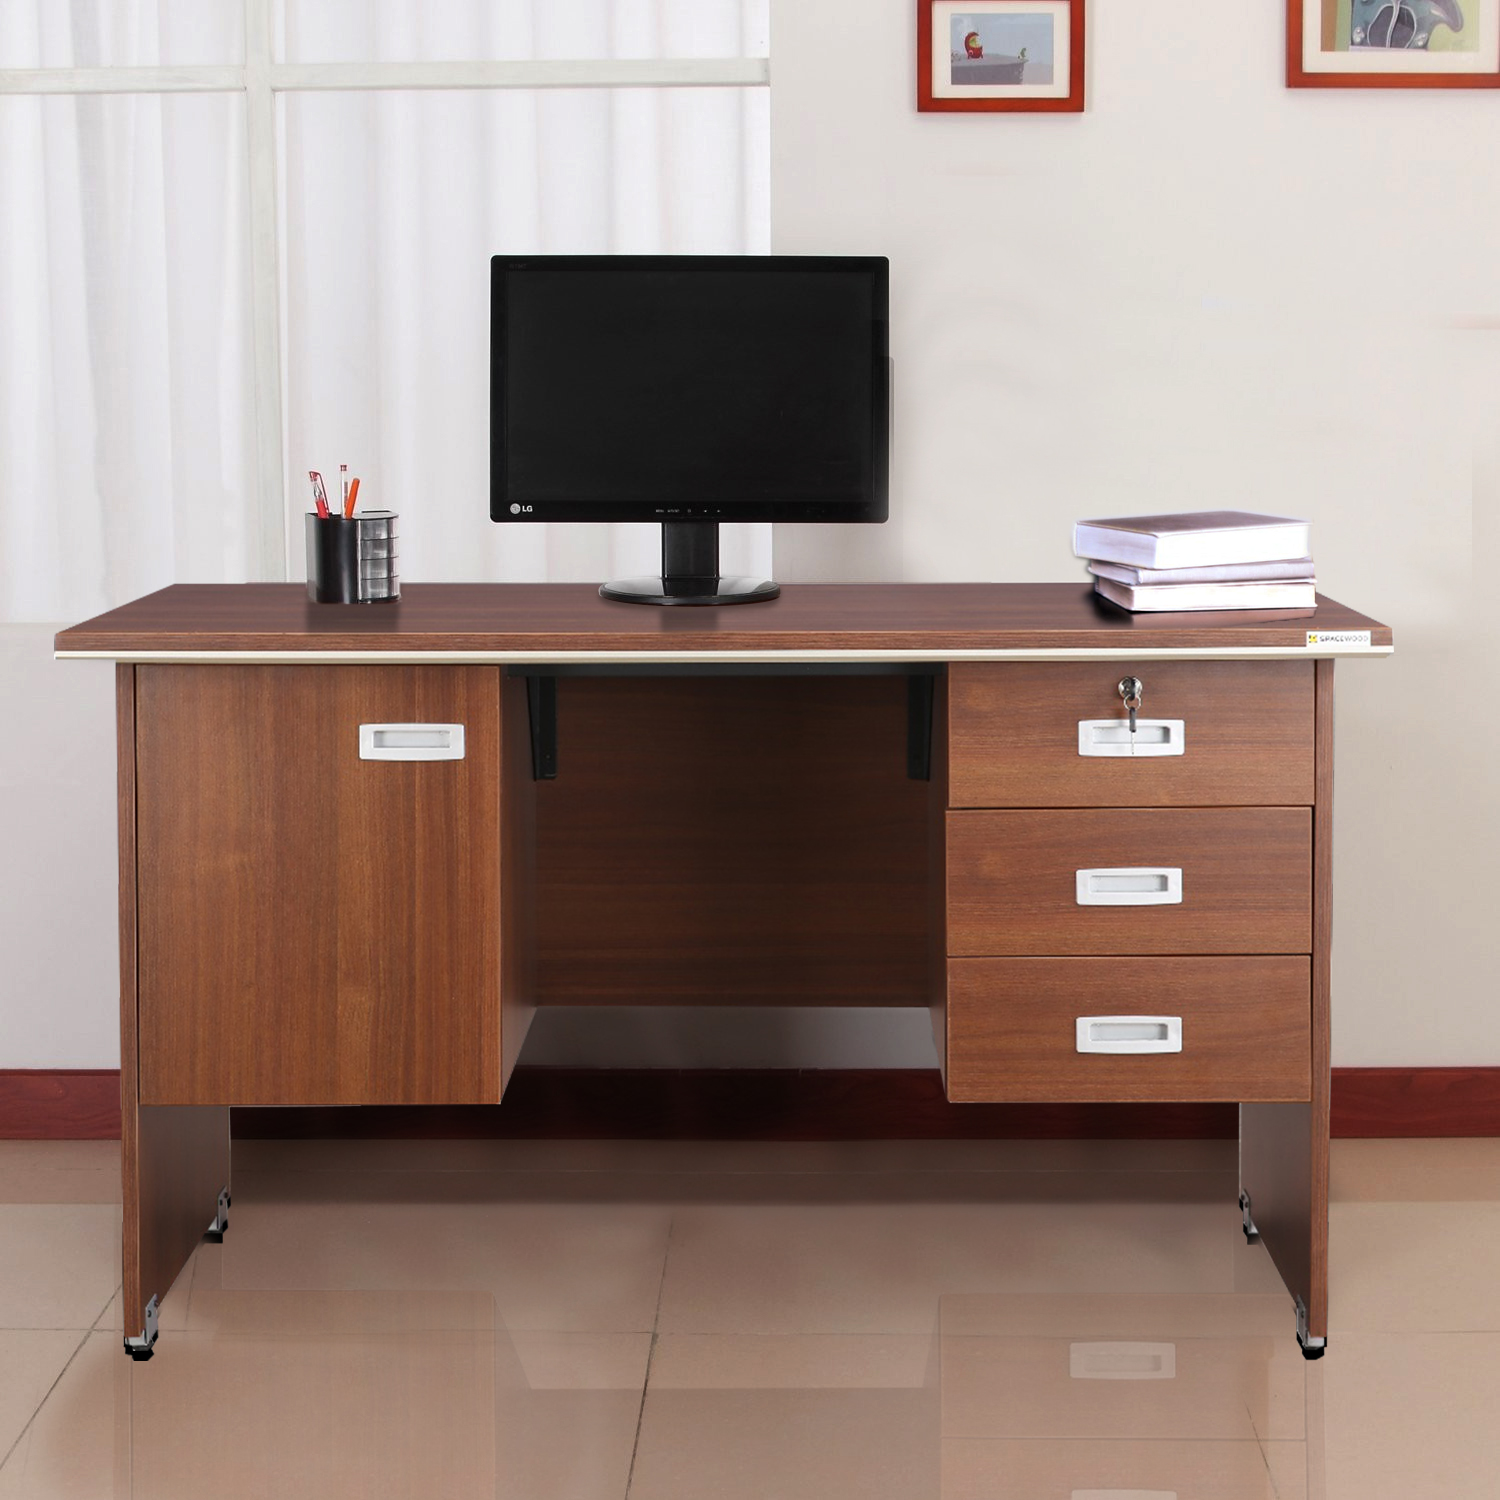 Integra Engineered Wood Office Table in Walnut Regato Colour by HomeTown